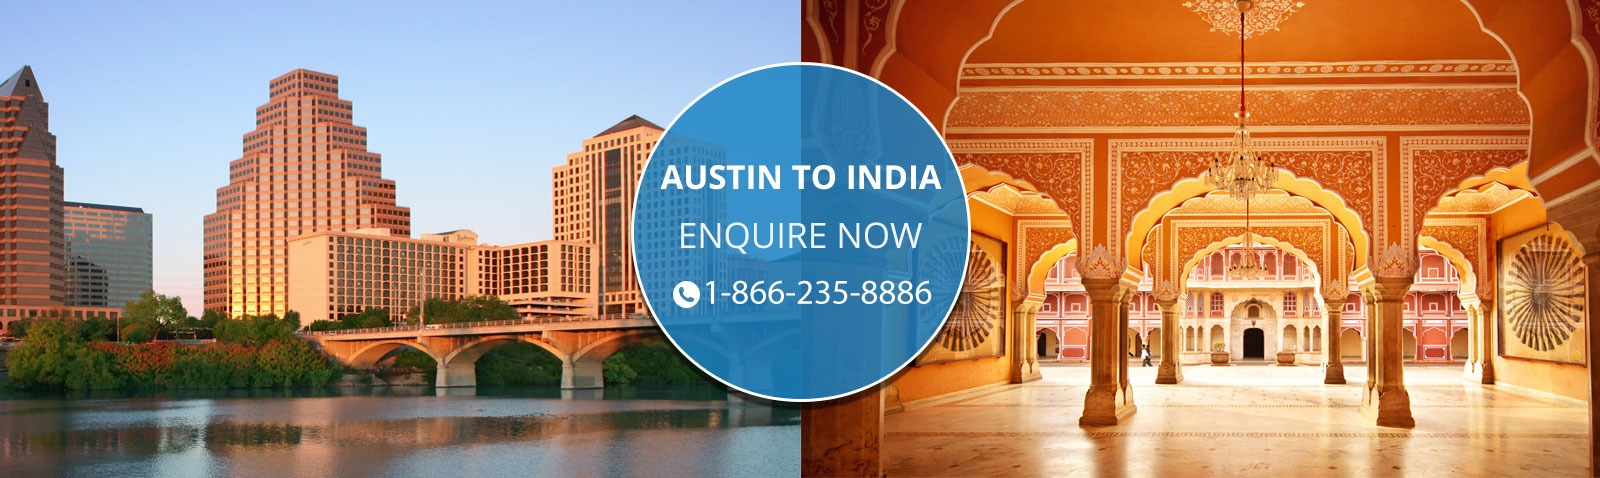 how to call from us to india